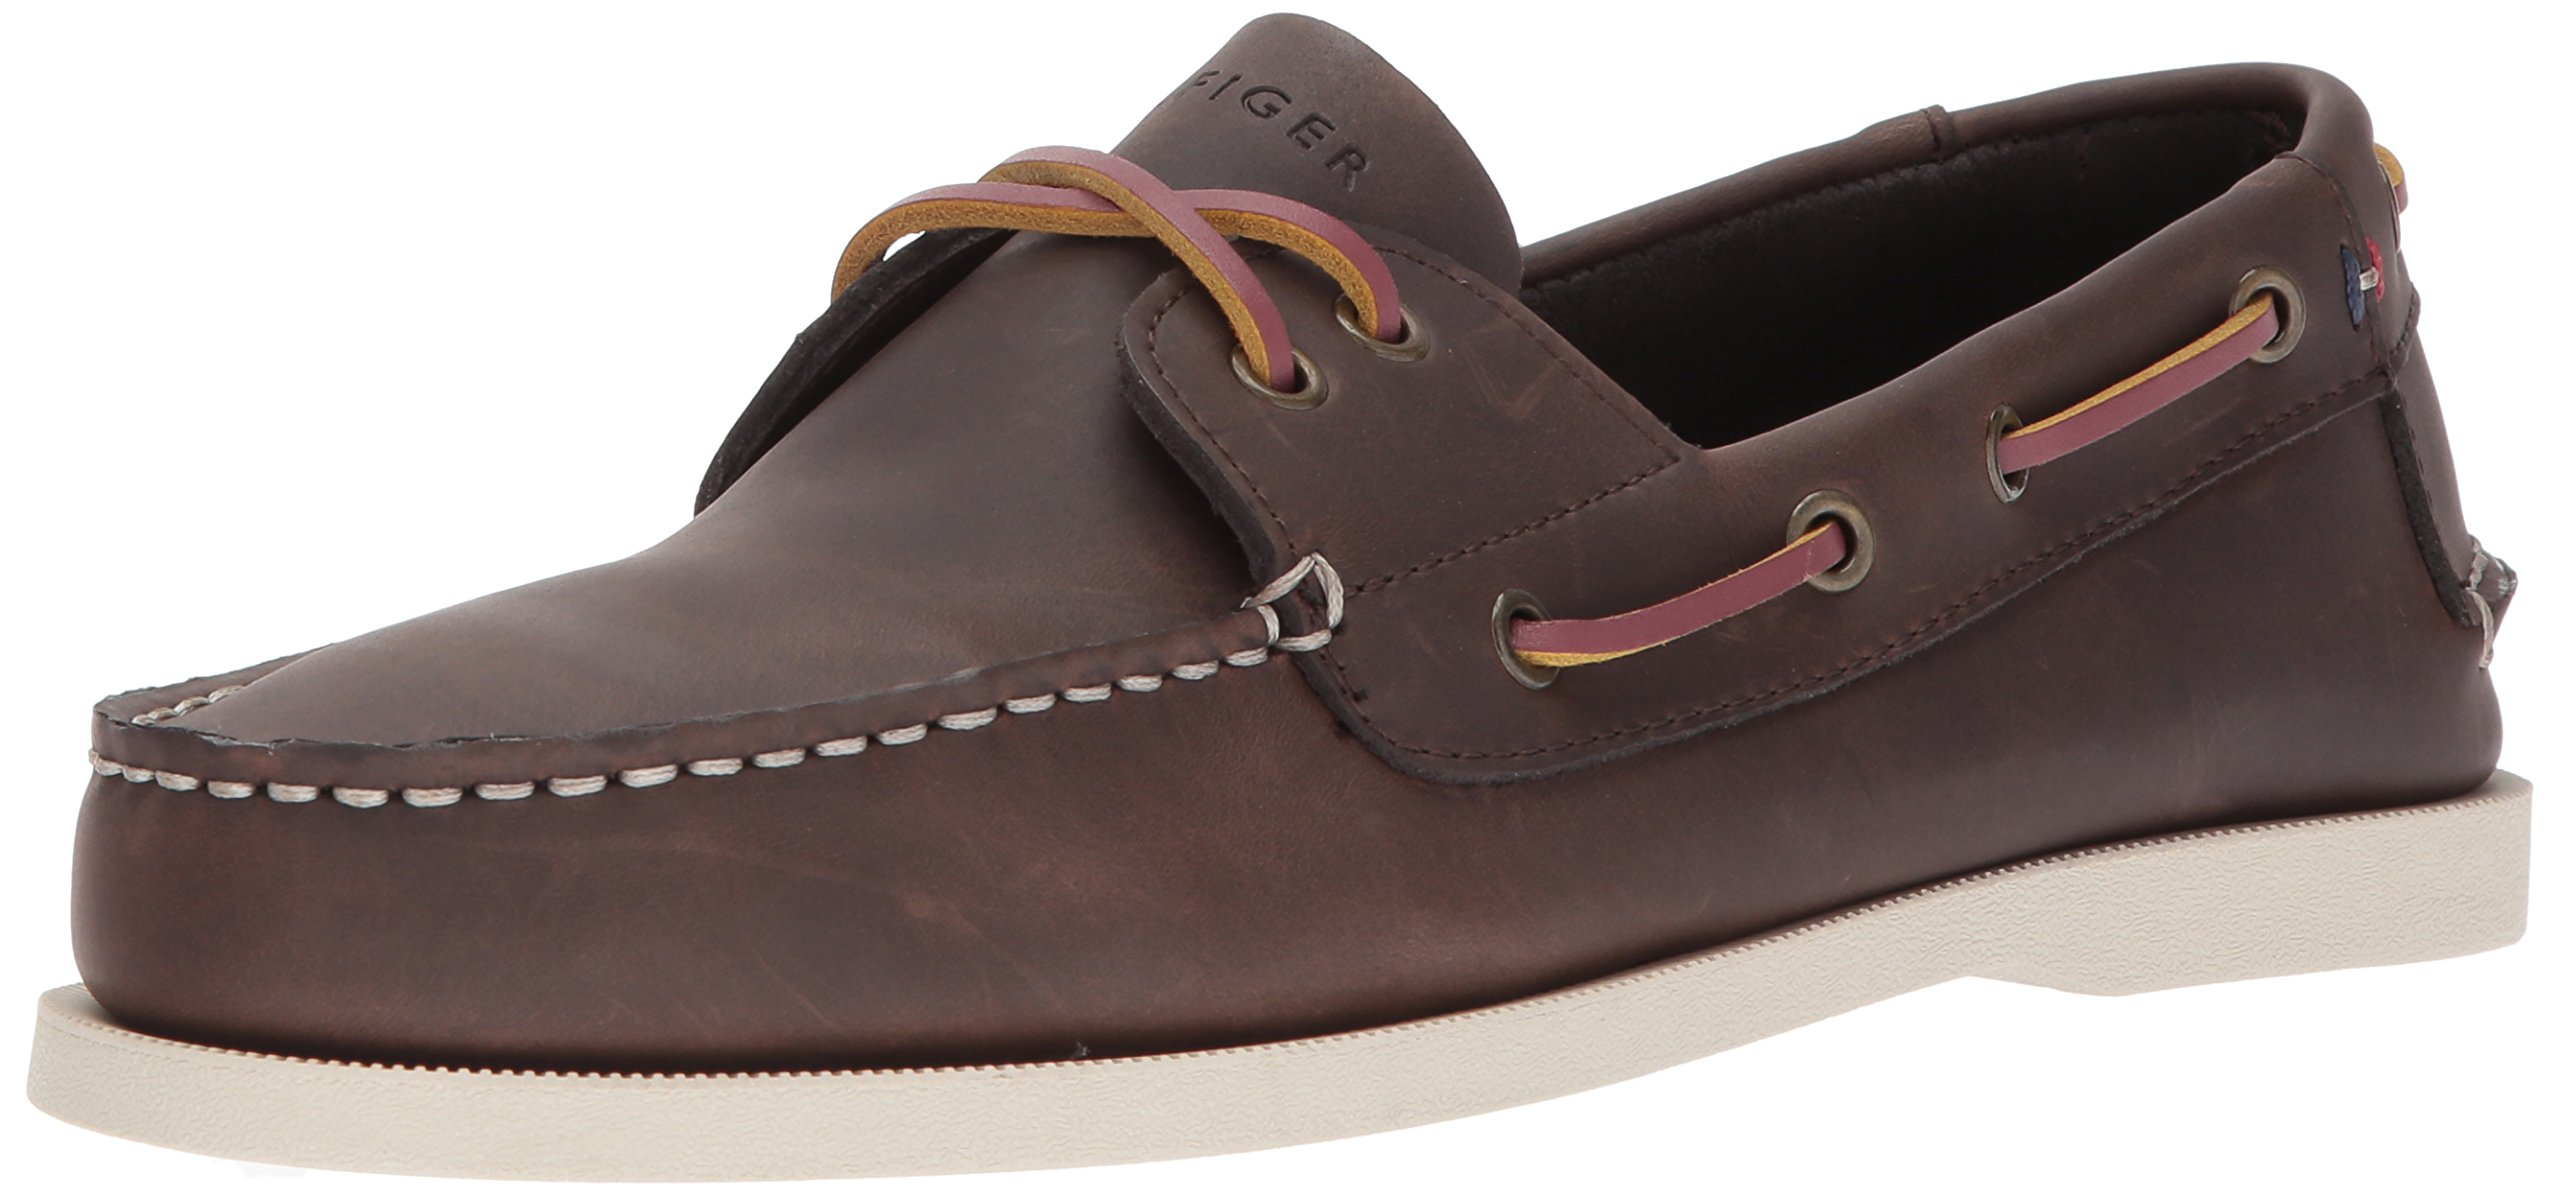 Tommy Hilfiger Men's Bowman Boat shoe,Coffe Bean,11 M US by Tommy Hilfiger